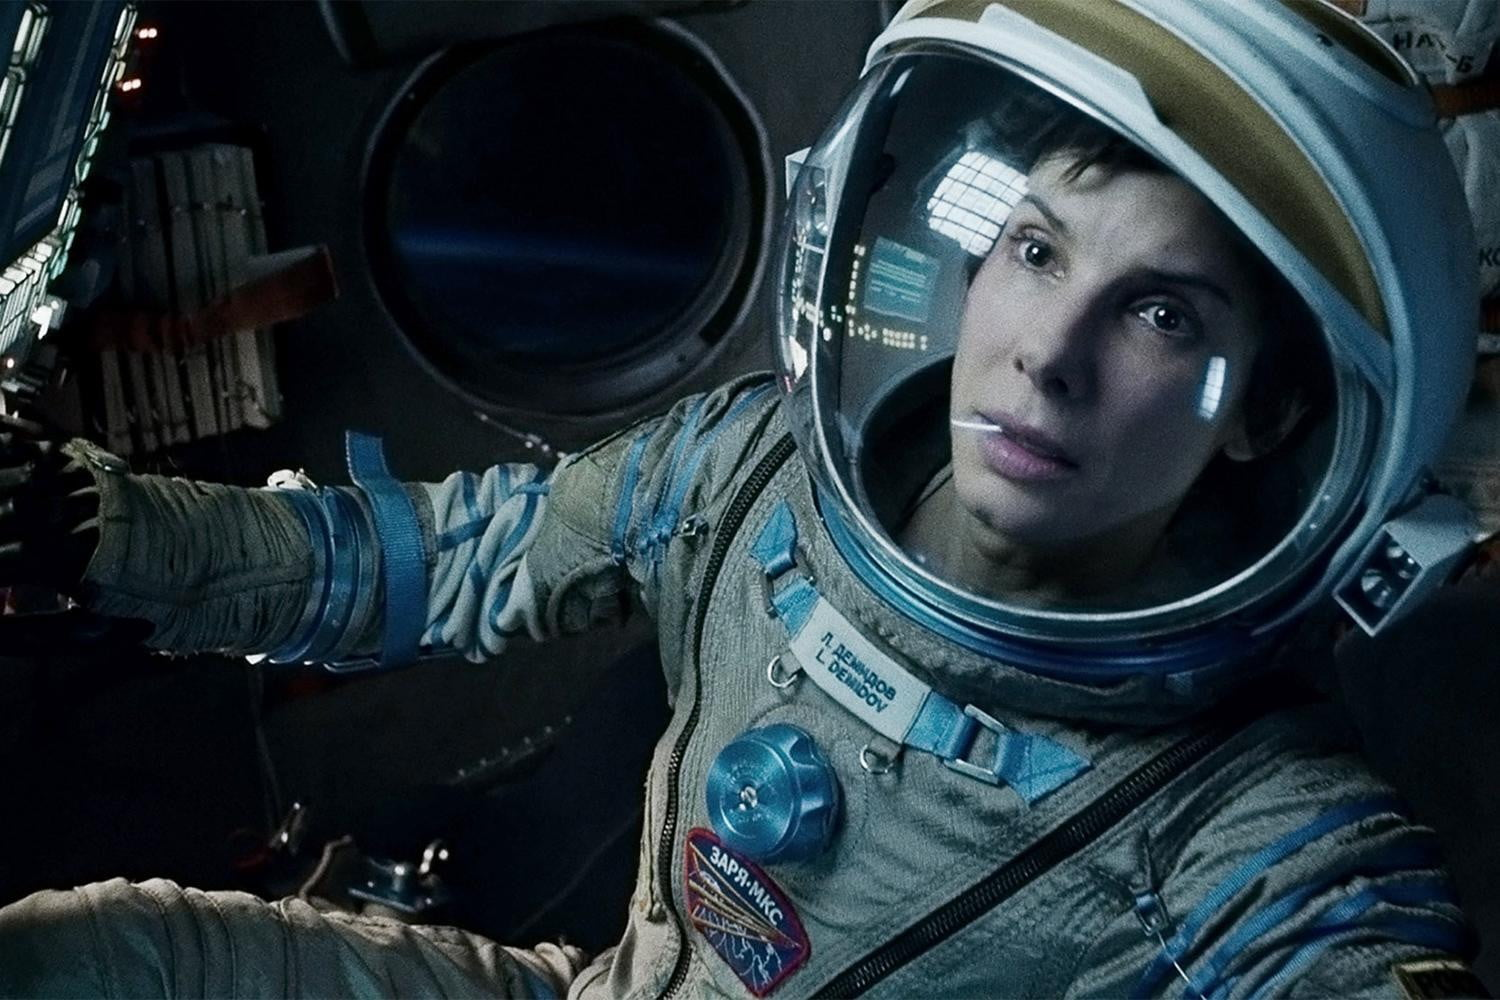 http://icdn9.digitaltrends.com/image/gravity-movie-review-sandra-bullock-suit-2.jpg